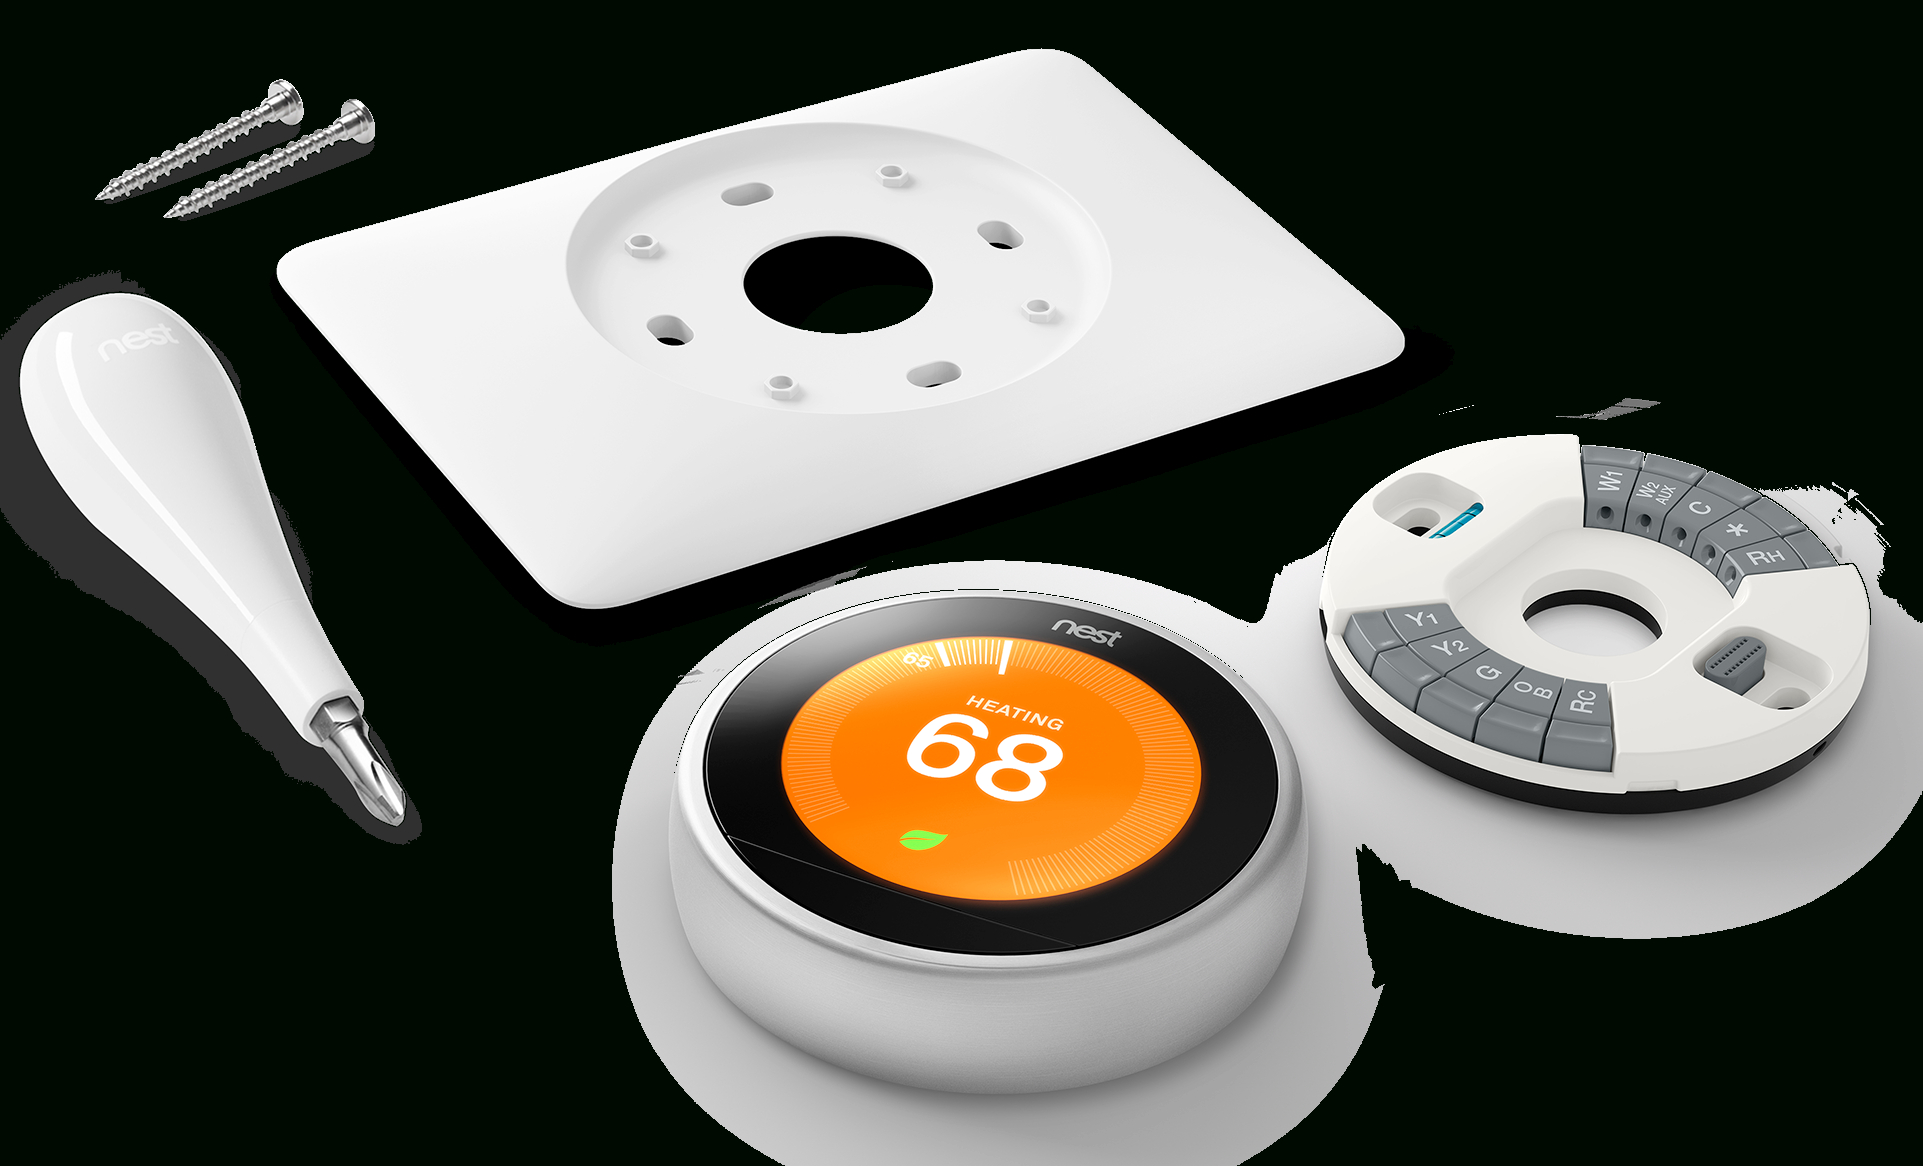 How To Install Your Nest Thermostat - Nest Wiring Diagram 4 Wires